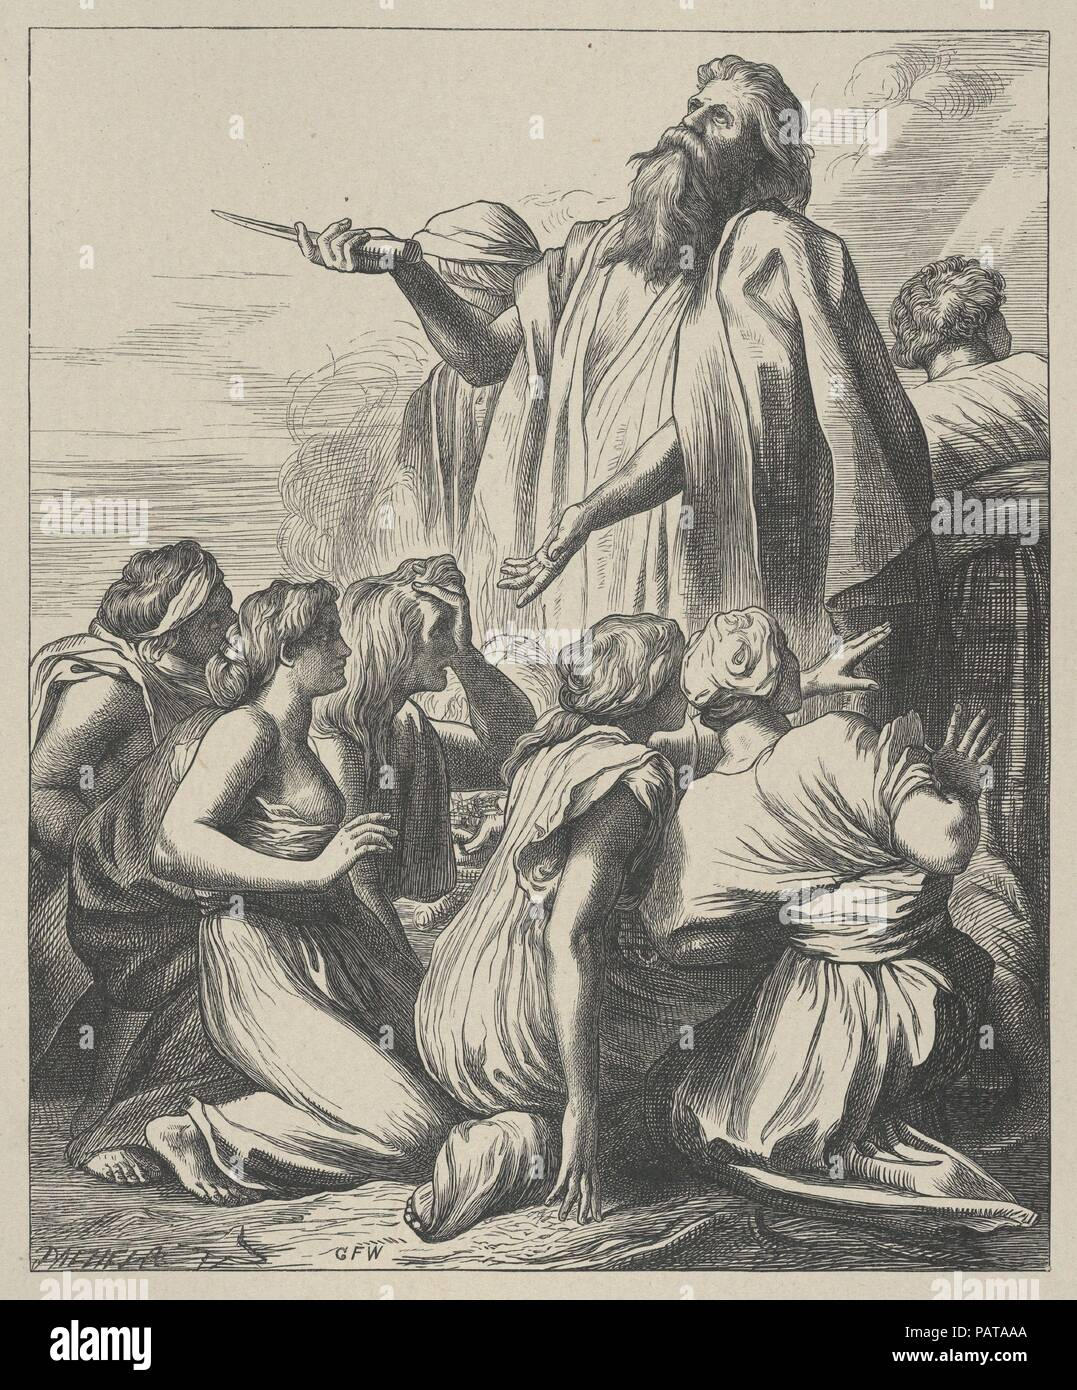 Noah's Sacrifice (Dalziels' Bible Gallery). Artist: After George Frederic Watts (British, London 1817-1904 London). Dimensions: Image: 8 3/8 × 6 7/8 in. (21.3 × 17.5 cm)  India sheet: 10 9/16 × 8 3/4 in. (26.9 × 22.3 cm)  Mount: 16 7/16 in. × 12 15/16 in. (41.7 × 32.9 cm). Engraver: Dalziel Brothers (British, active 1839-1893). Printer: Camden Press (British, London). Publisher: Scribner and Welford (New York, NY). Date: 1881. Museum: Metropolitan Museum of Art, New York, USA. Stock Photo